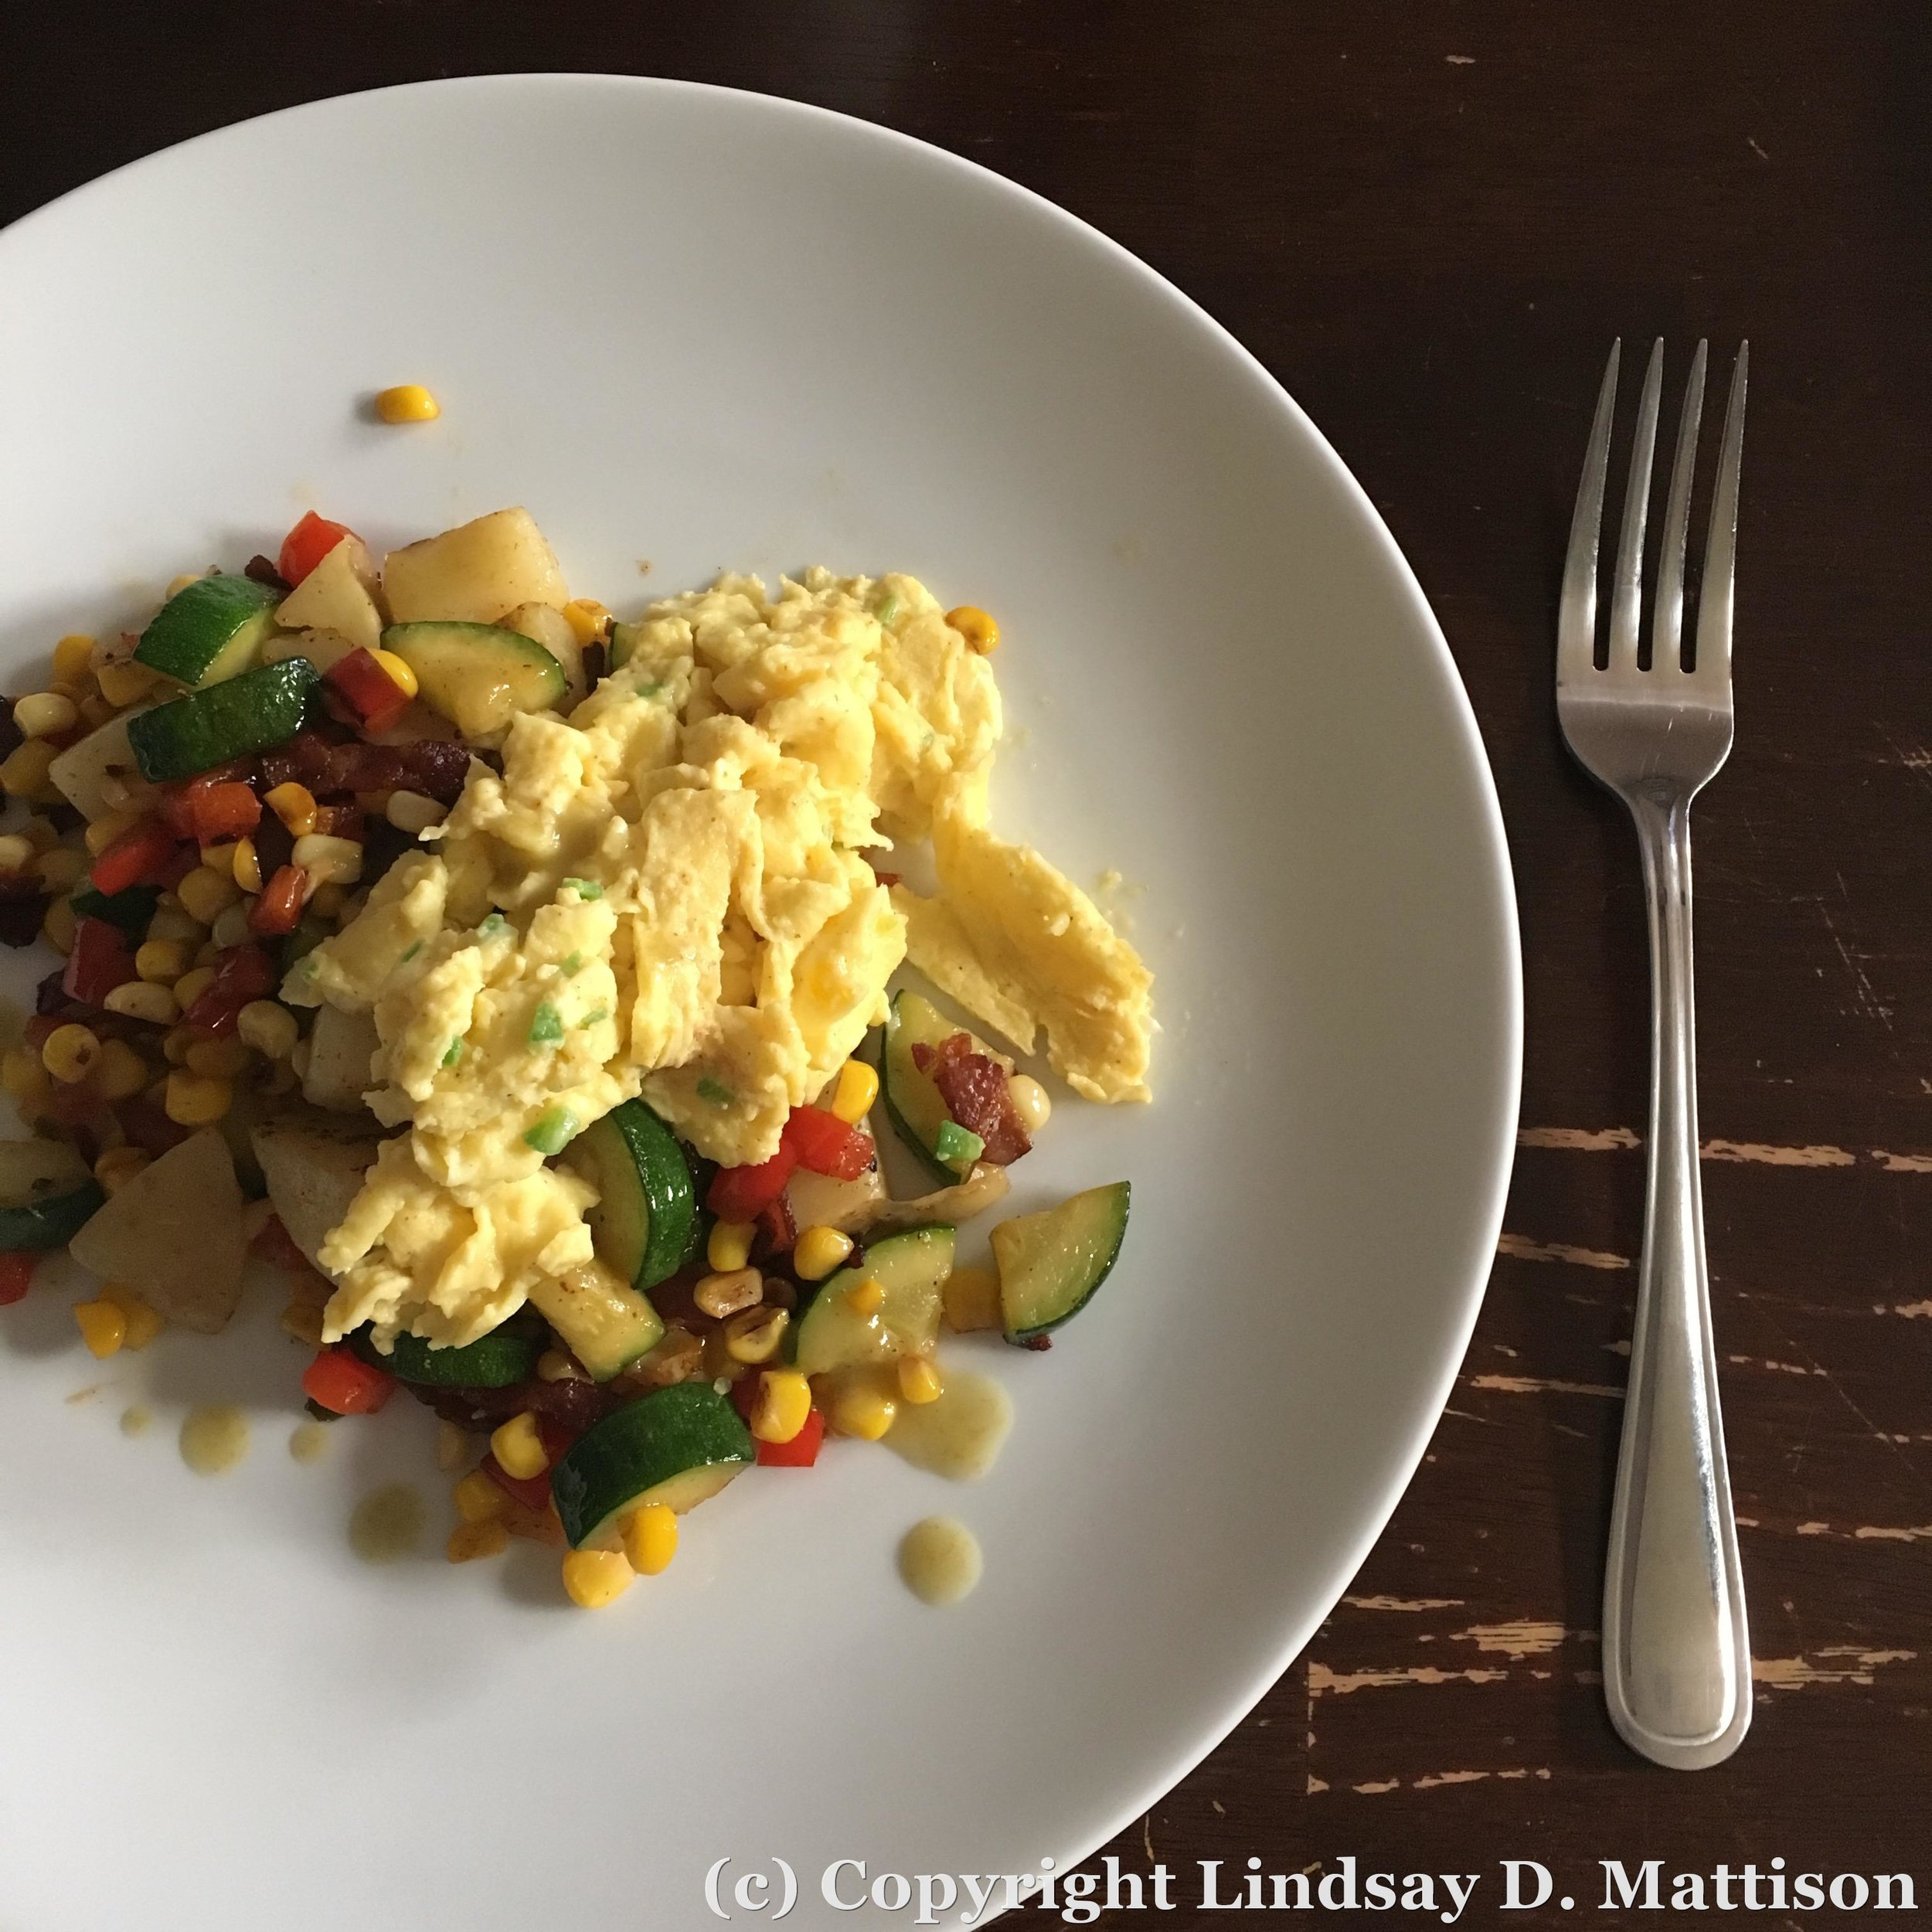 Summer on a plate: zucchini, red peppers, and corn topped with some softly scrambled eggs. I think I spy a piece of bacon on this plate...should I self describe as a bacontarian? Is that a real thing?